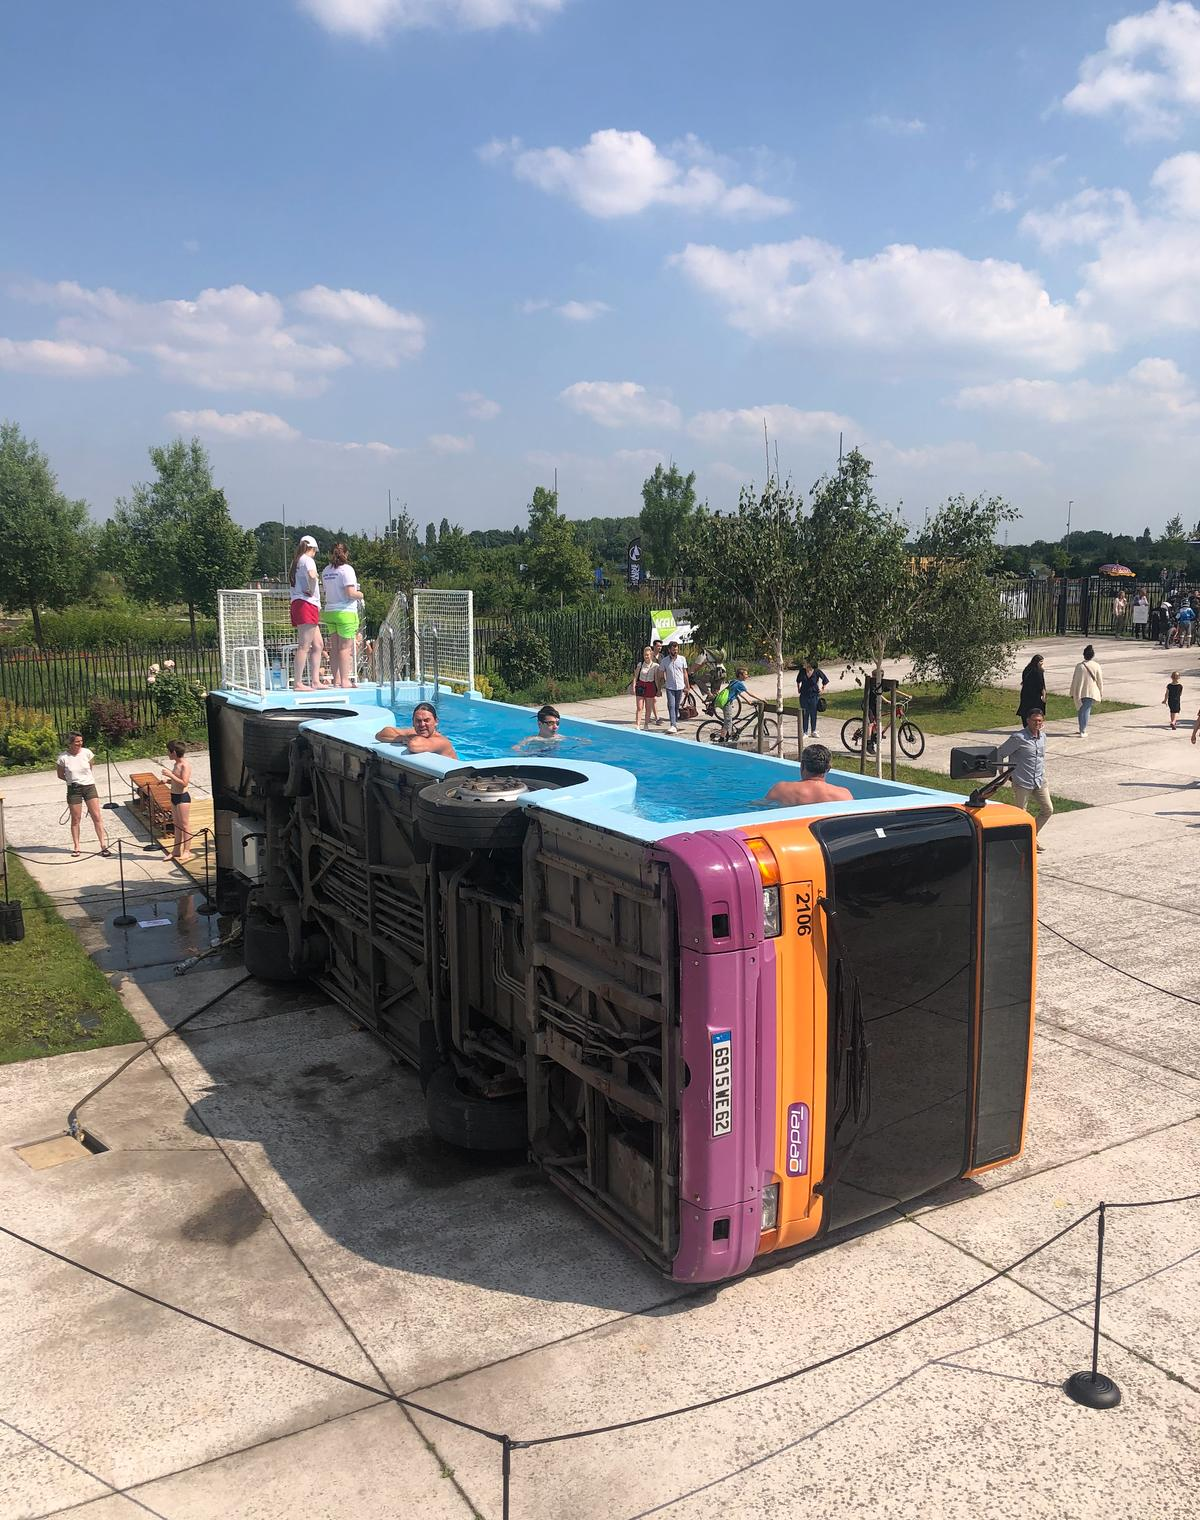 Le Bus Piscine was modified with the help of specialist engineers to turn it into a swimming pool